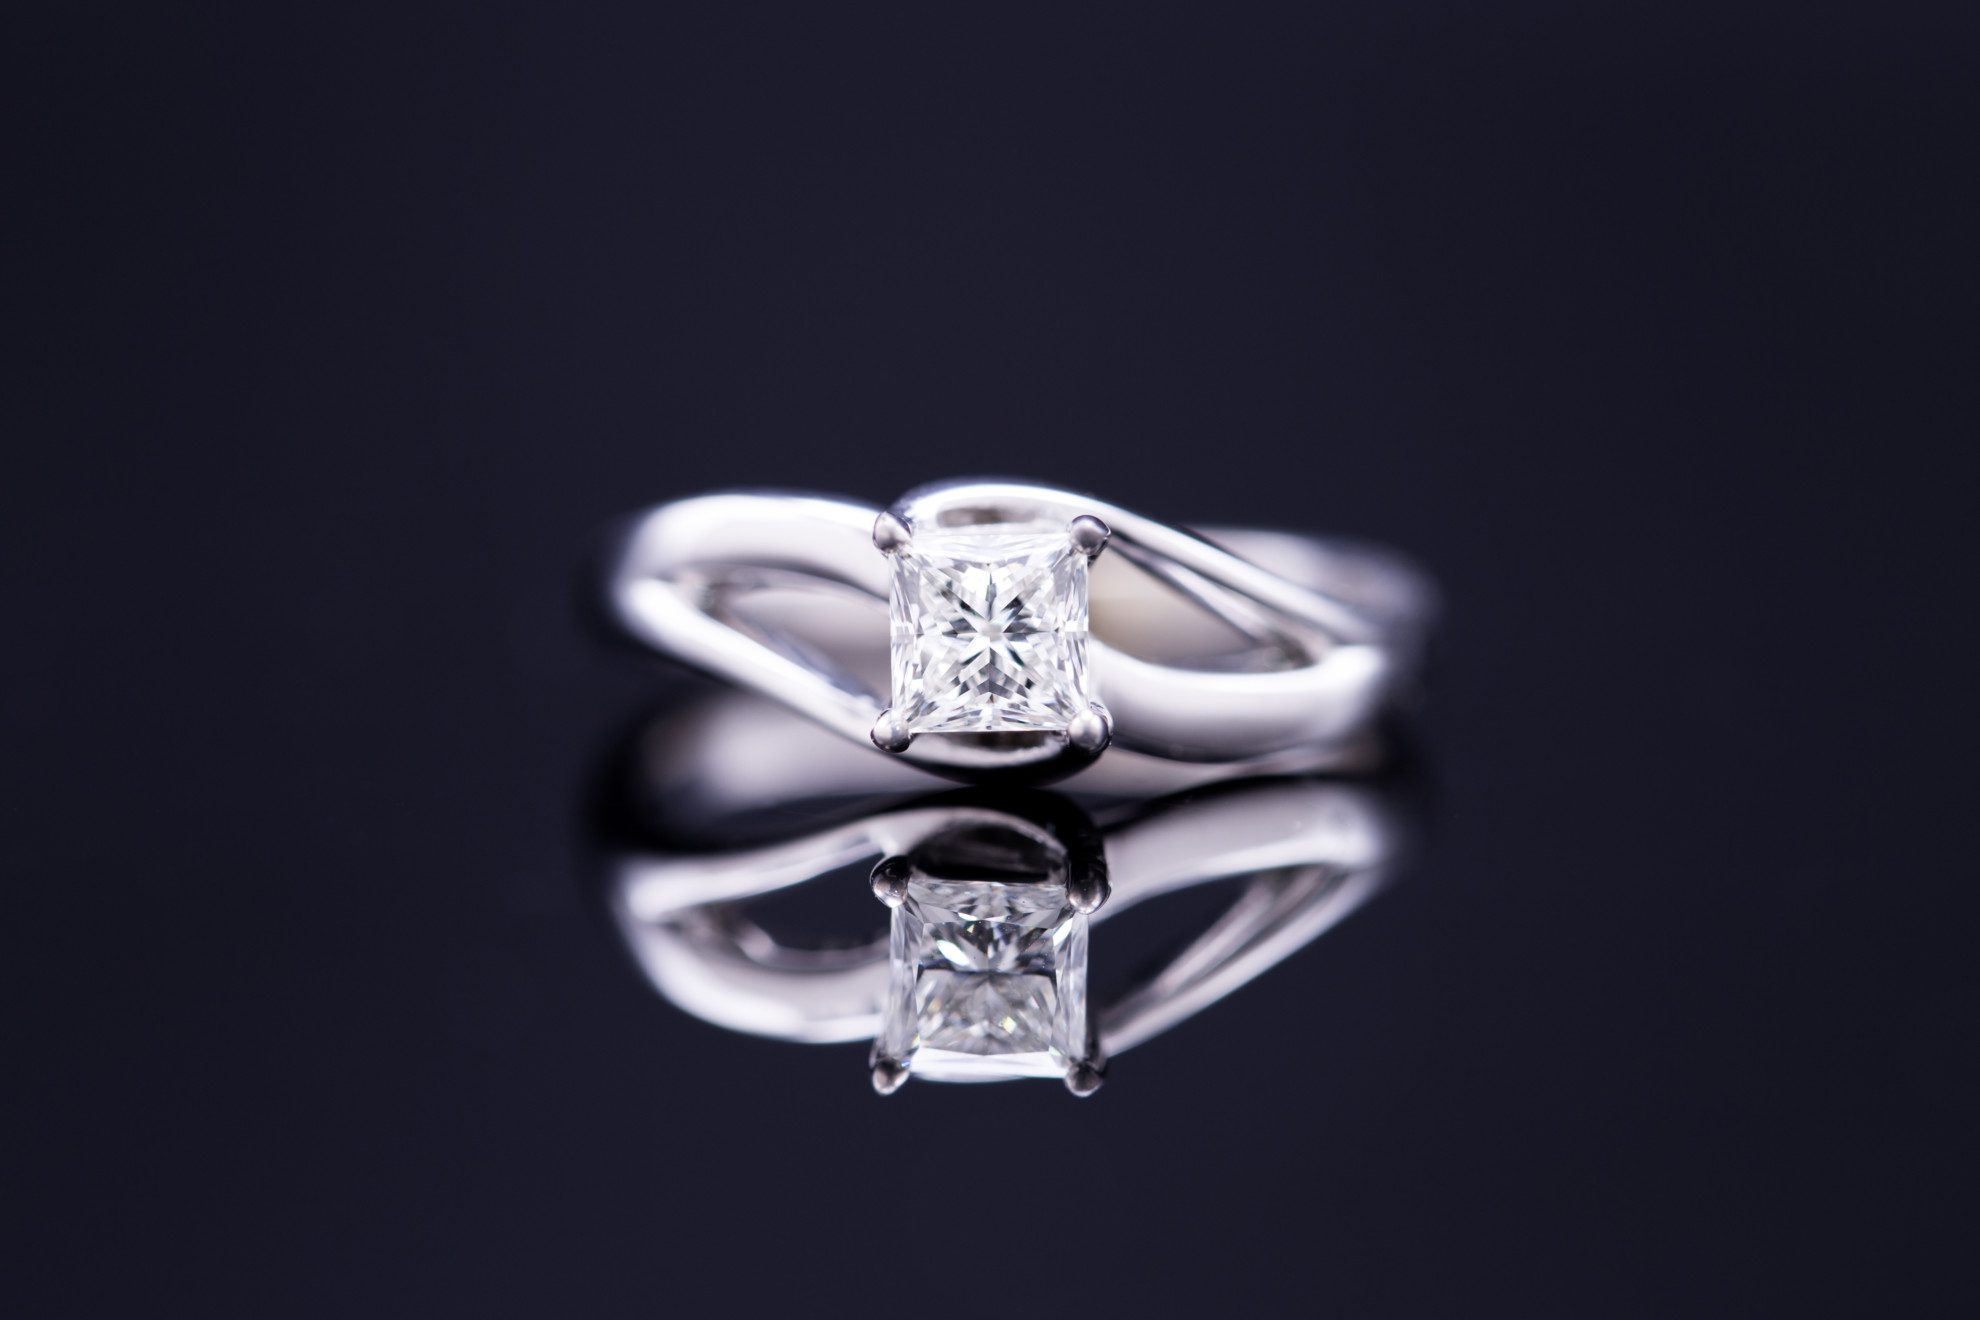 princess-cut diamonds - bypass setting engagement ring